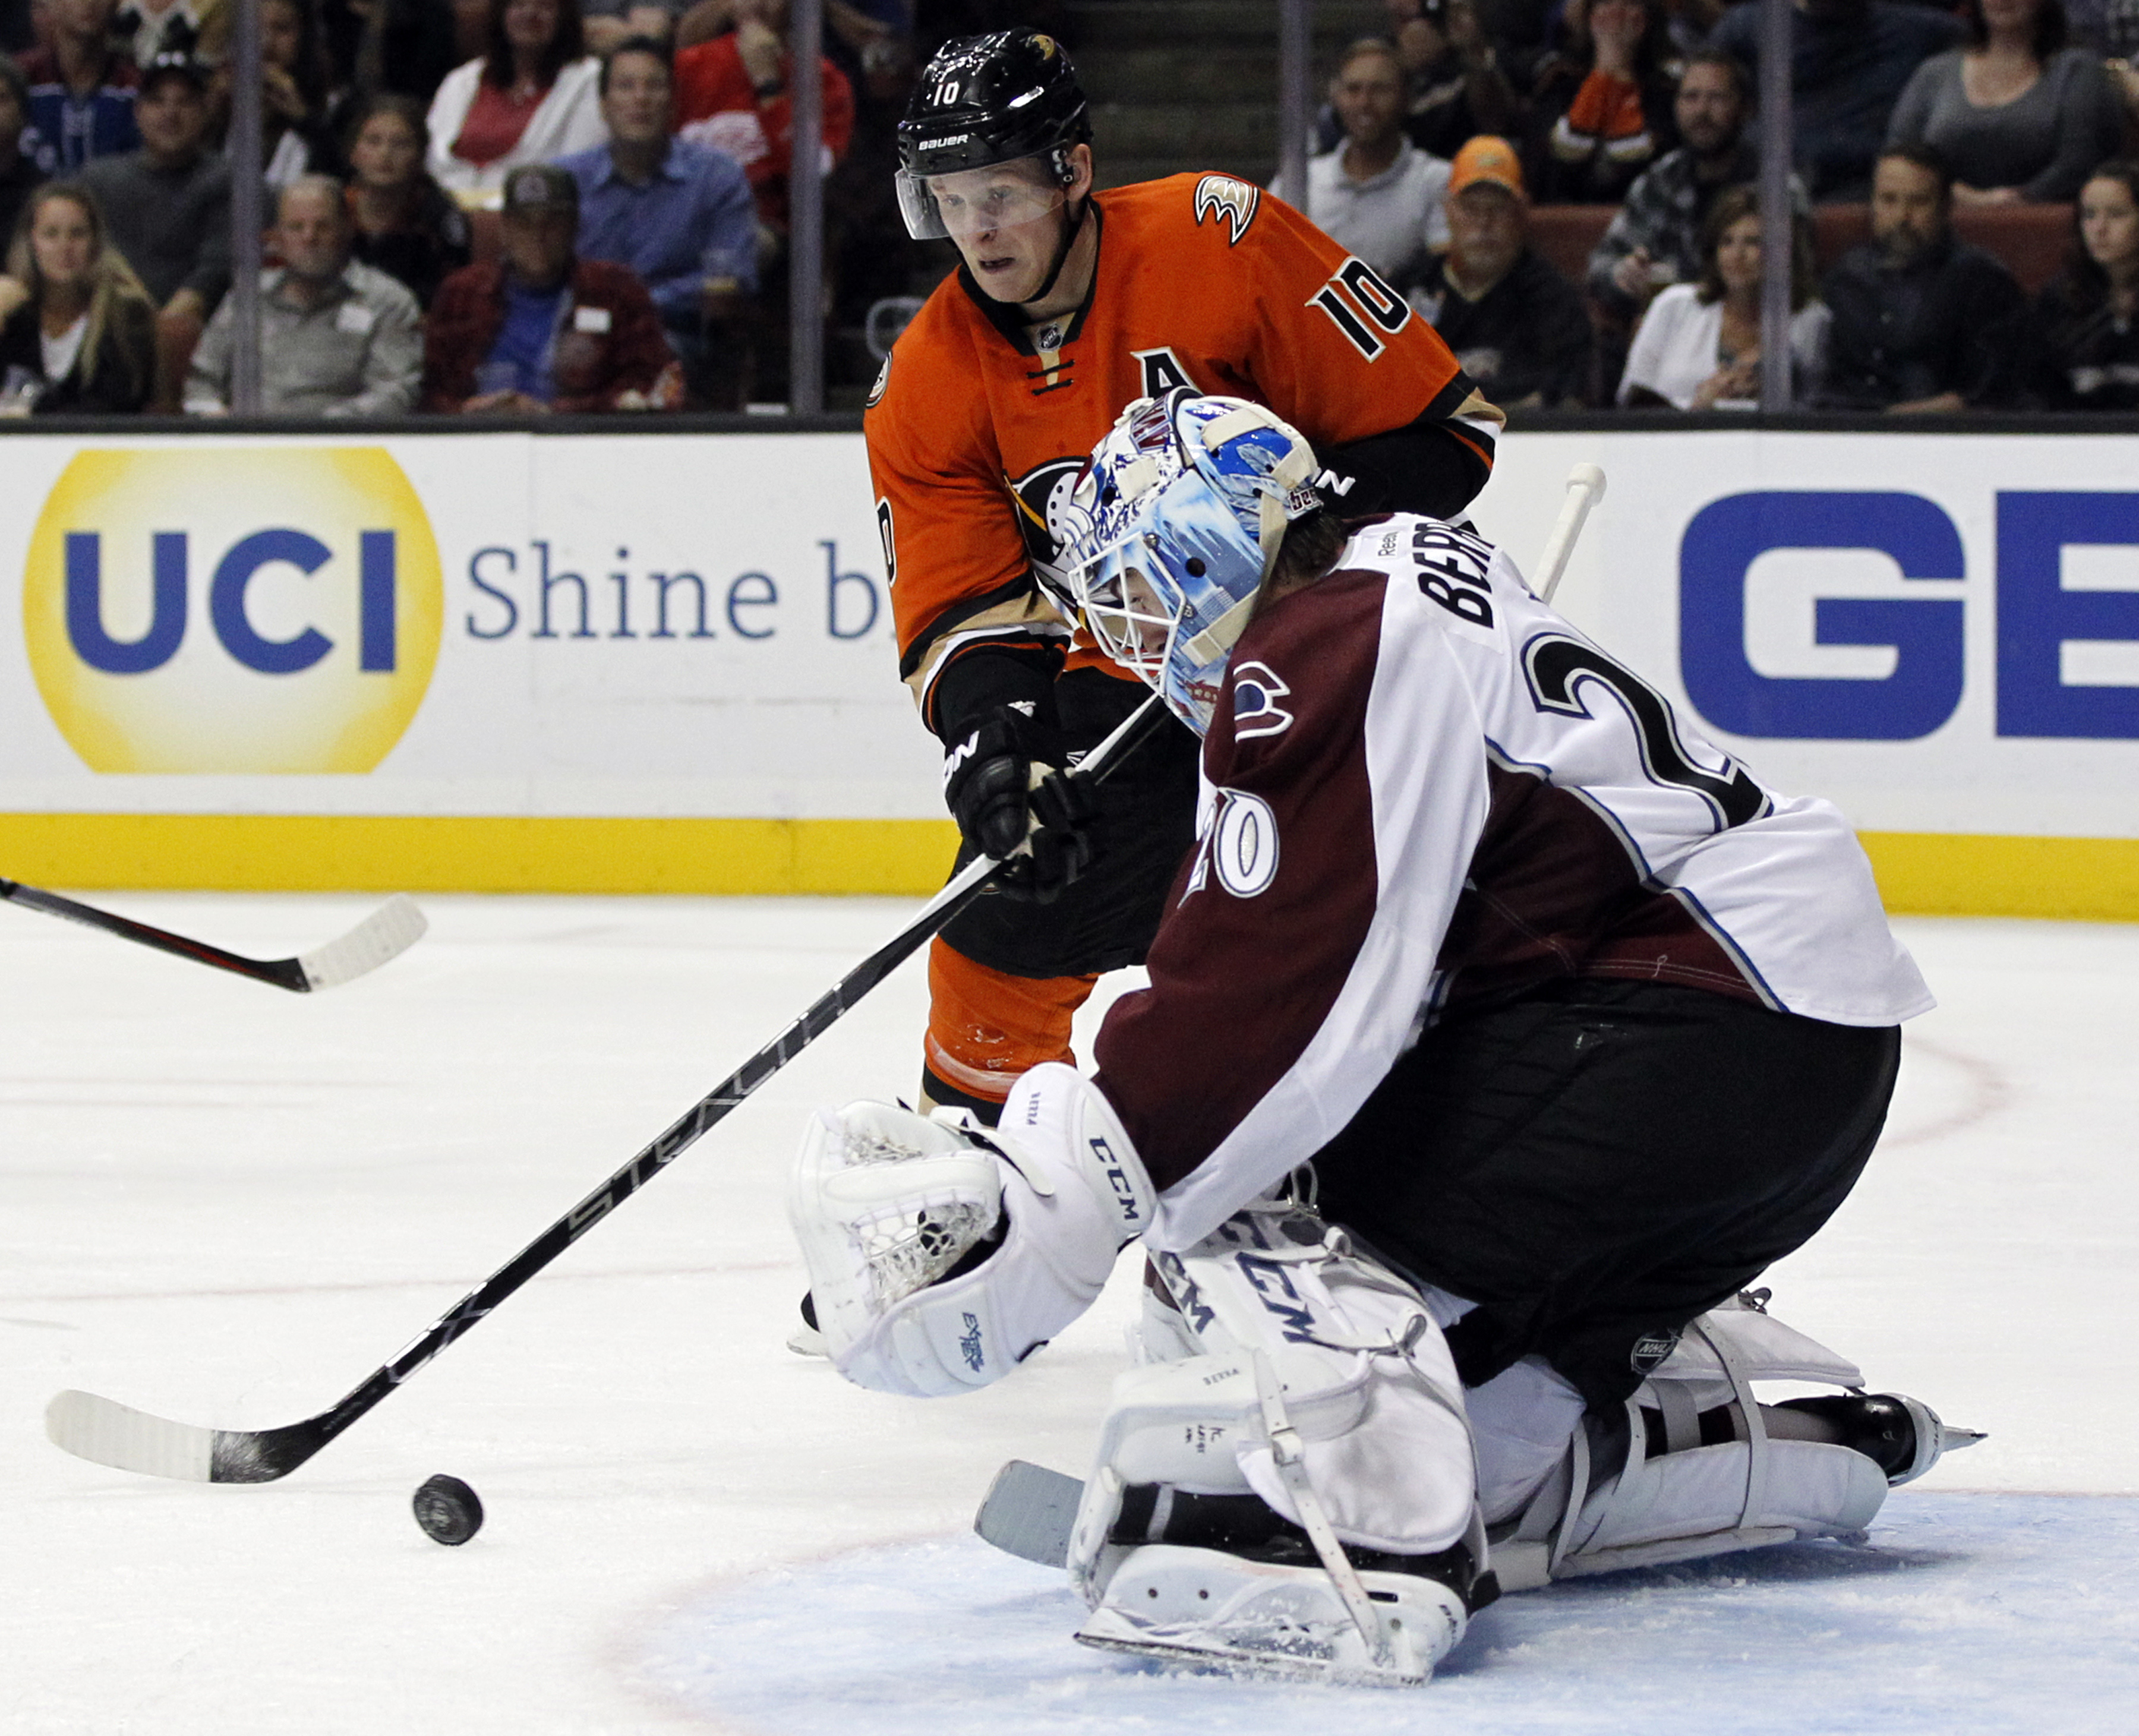 Anaheim Ducks right wing Corey Perry (10) battles Colorado Avalanche goalie Reto Berra (20), of Switzerland for the puck during the second period of an NHL hockey game in Anaheim, Calif., Friday, Oct. 16, 2015. (AP Photo/Alex Gallardo)